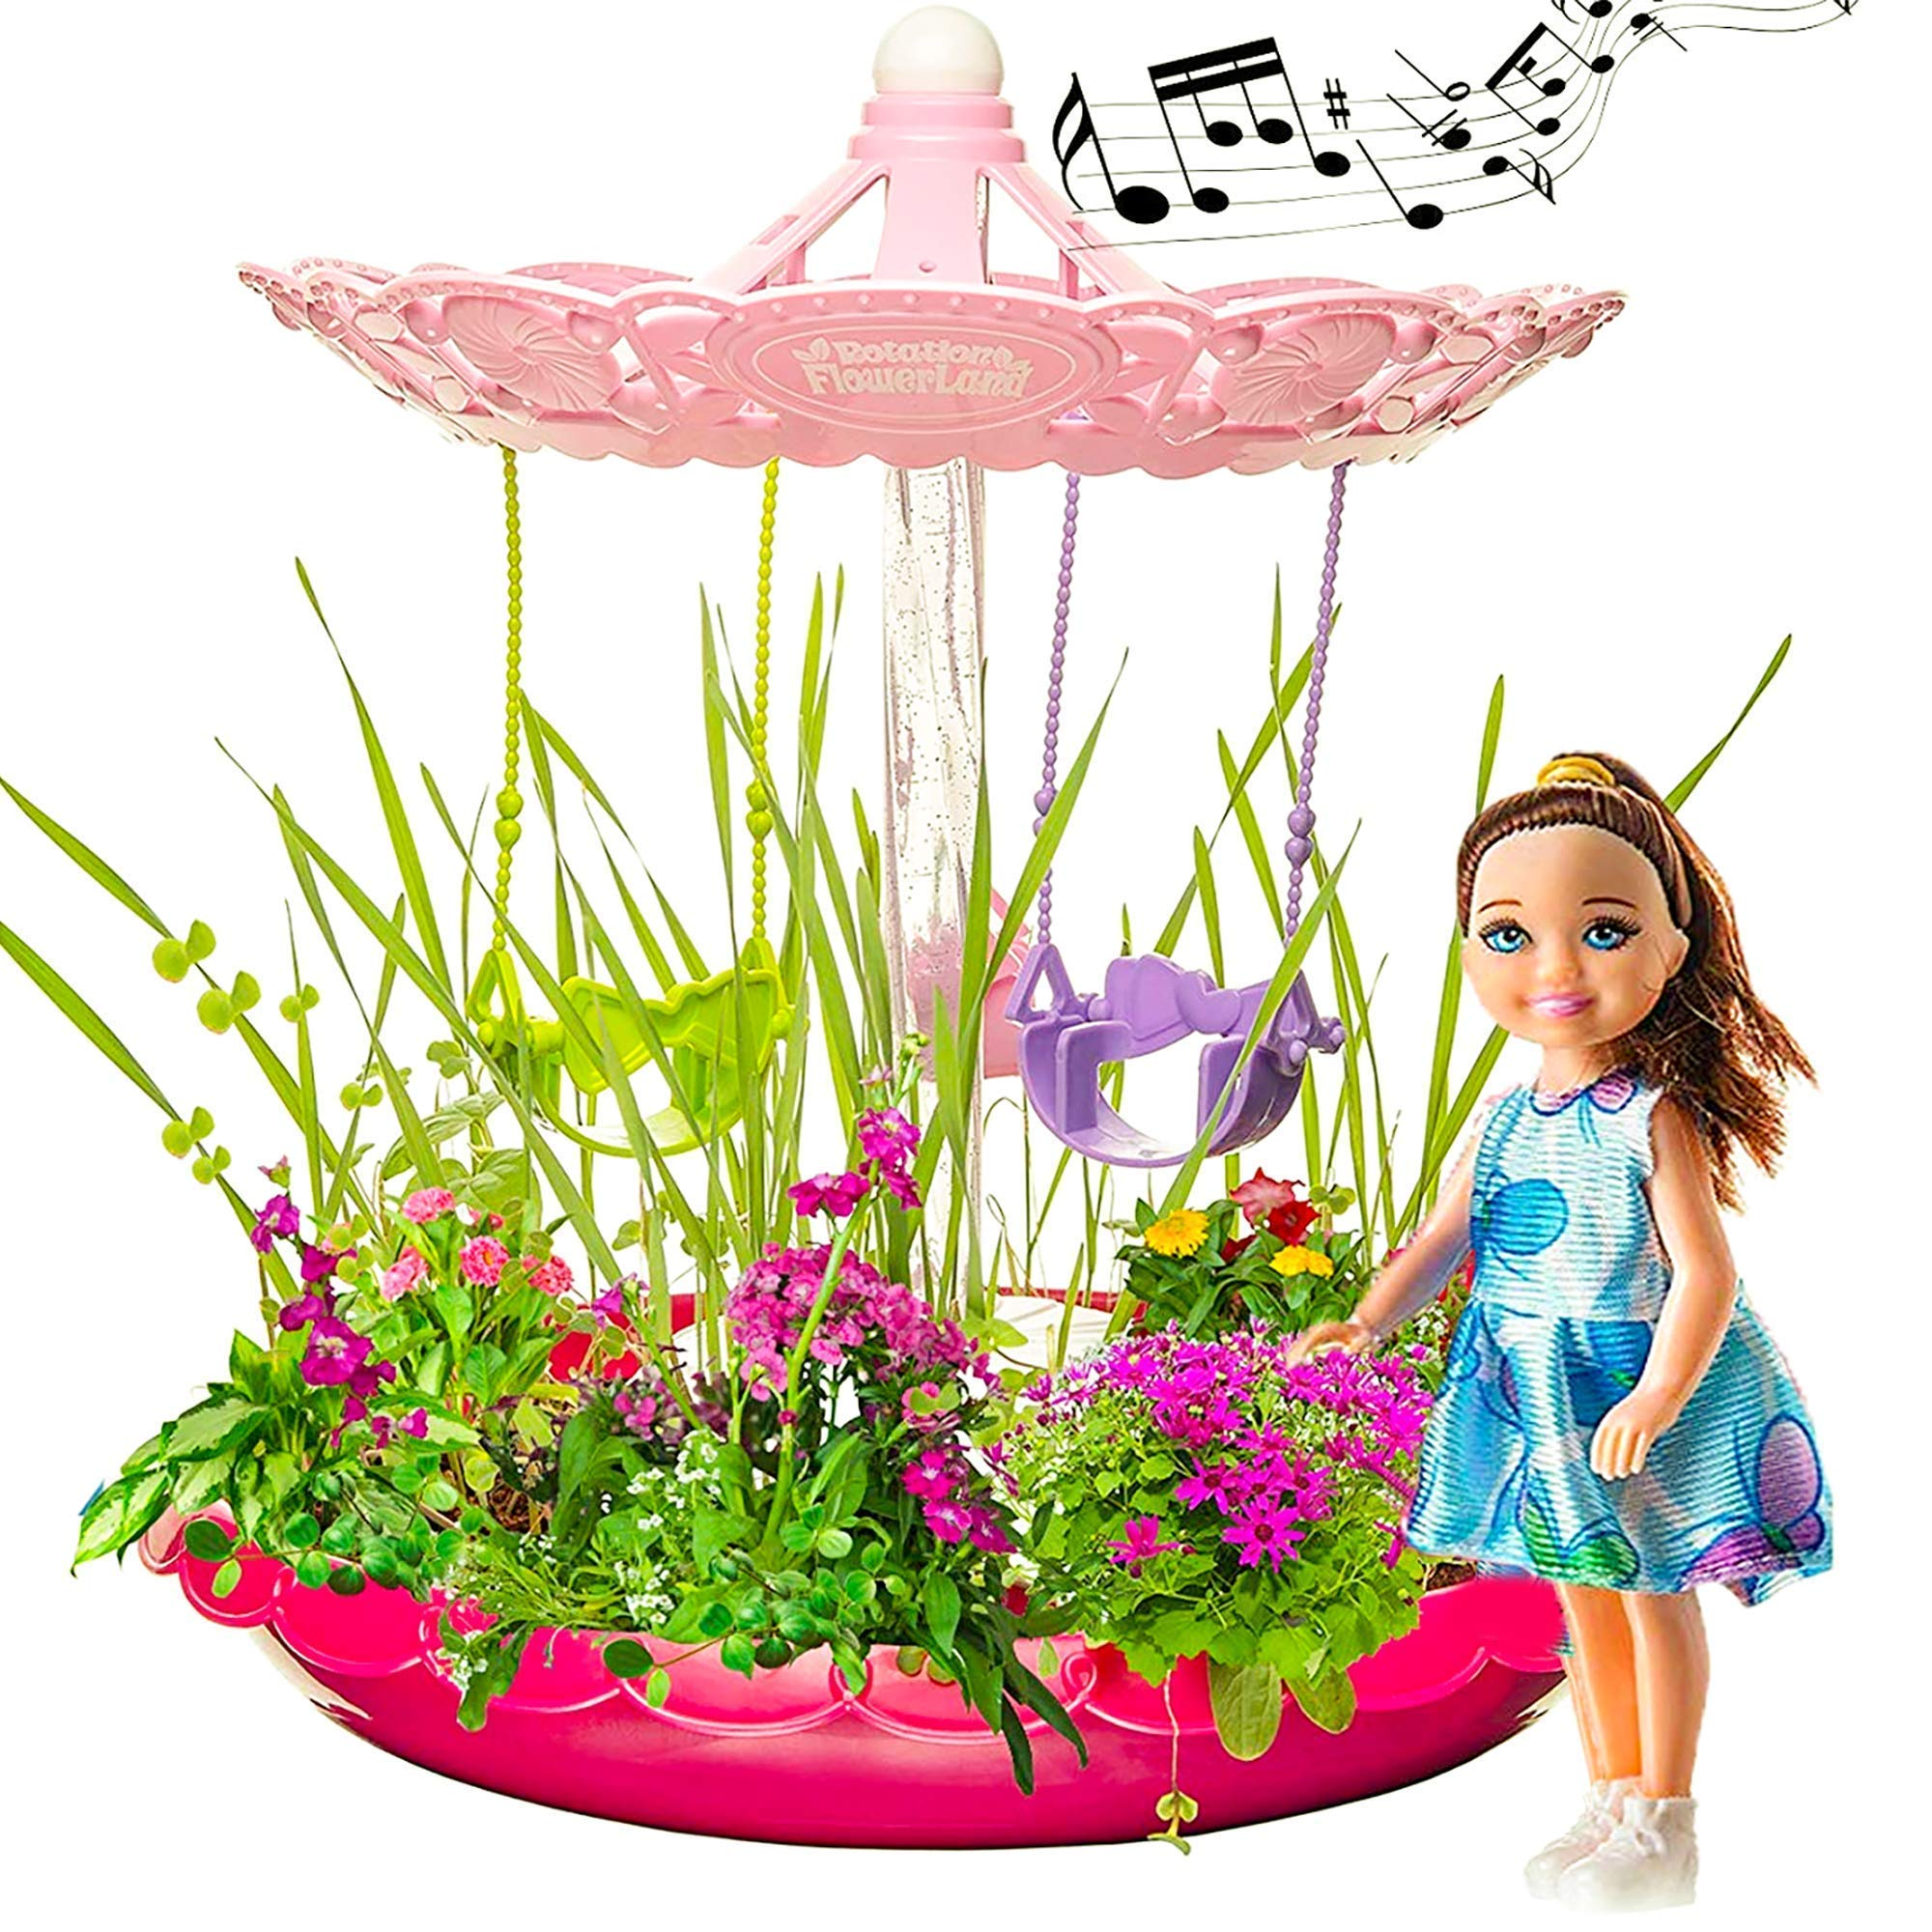 Fairy Garden Craft Kit Advanced Play - Kids Garden Set for Boys and Girls - Grow Your Very Own Magic Flowers and Plants Indoor - Best Creativity Gardening Gift for Kids 3 - 10 Years Old (Pink)